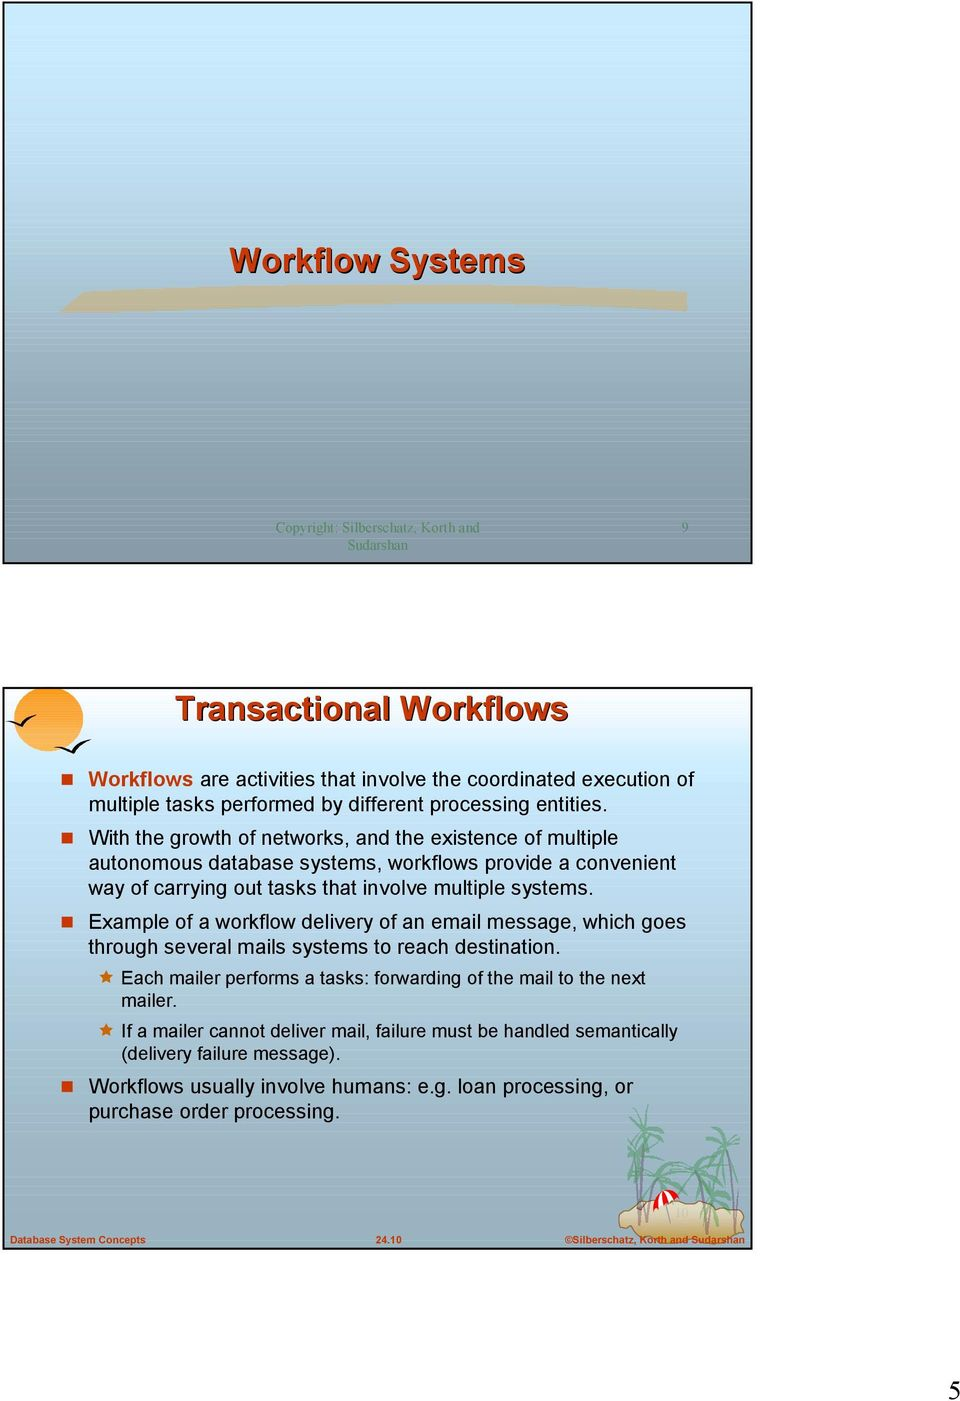 ! With the growth of networks, and the existence of multiple autonomous database systems, workflows provide a convenient way of carrying out tasks that involve multiple systems.